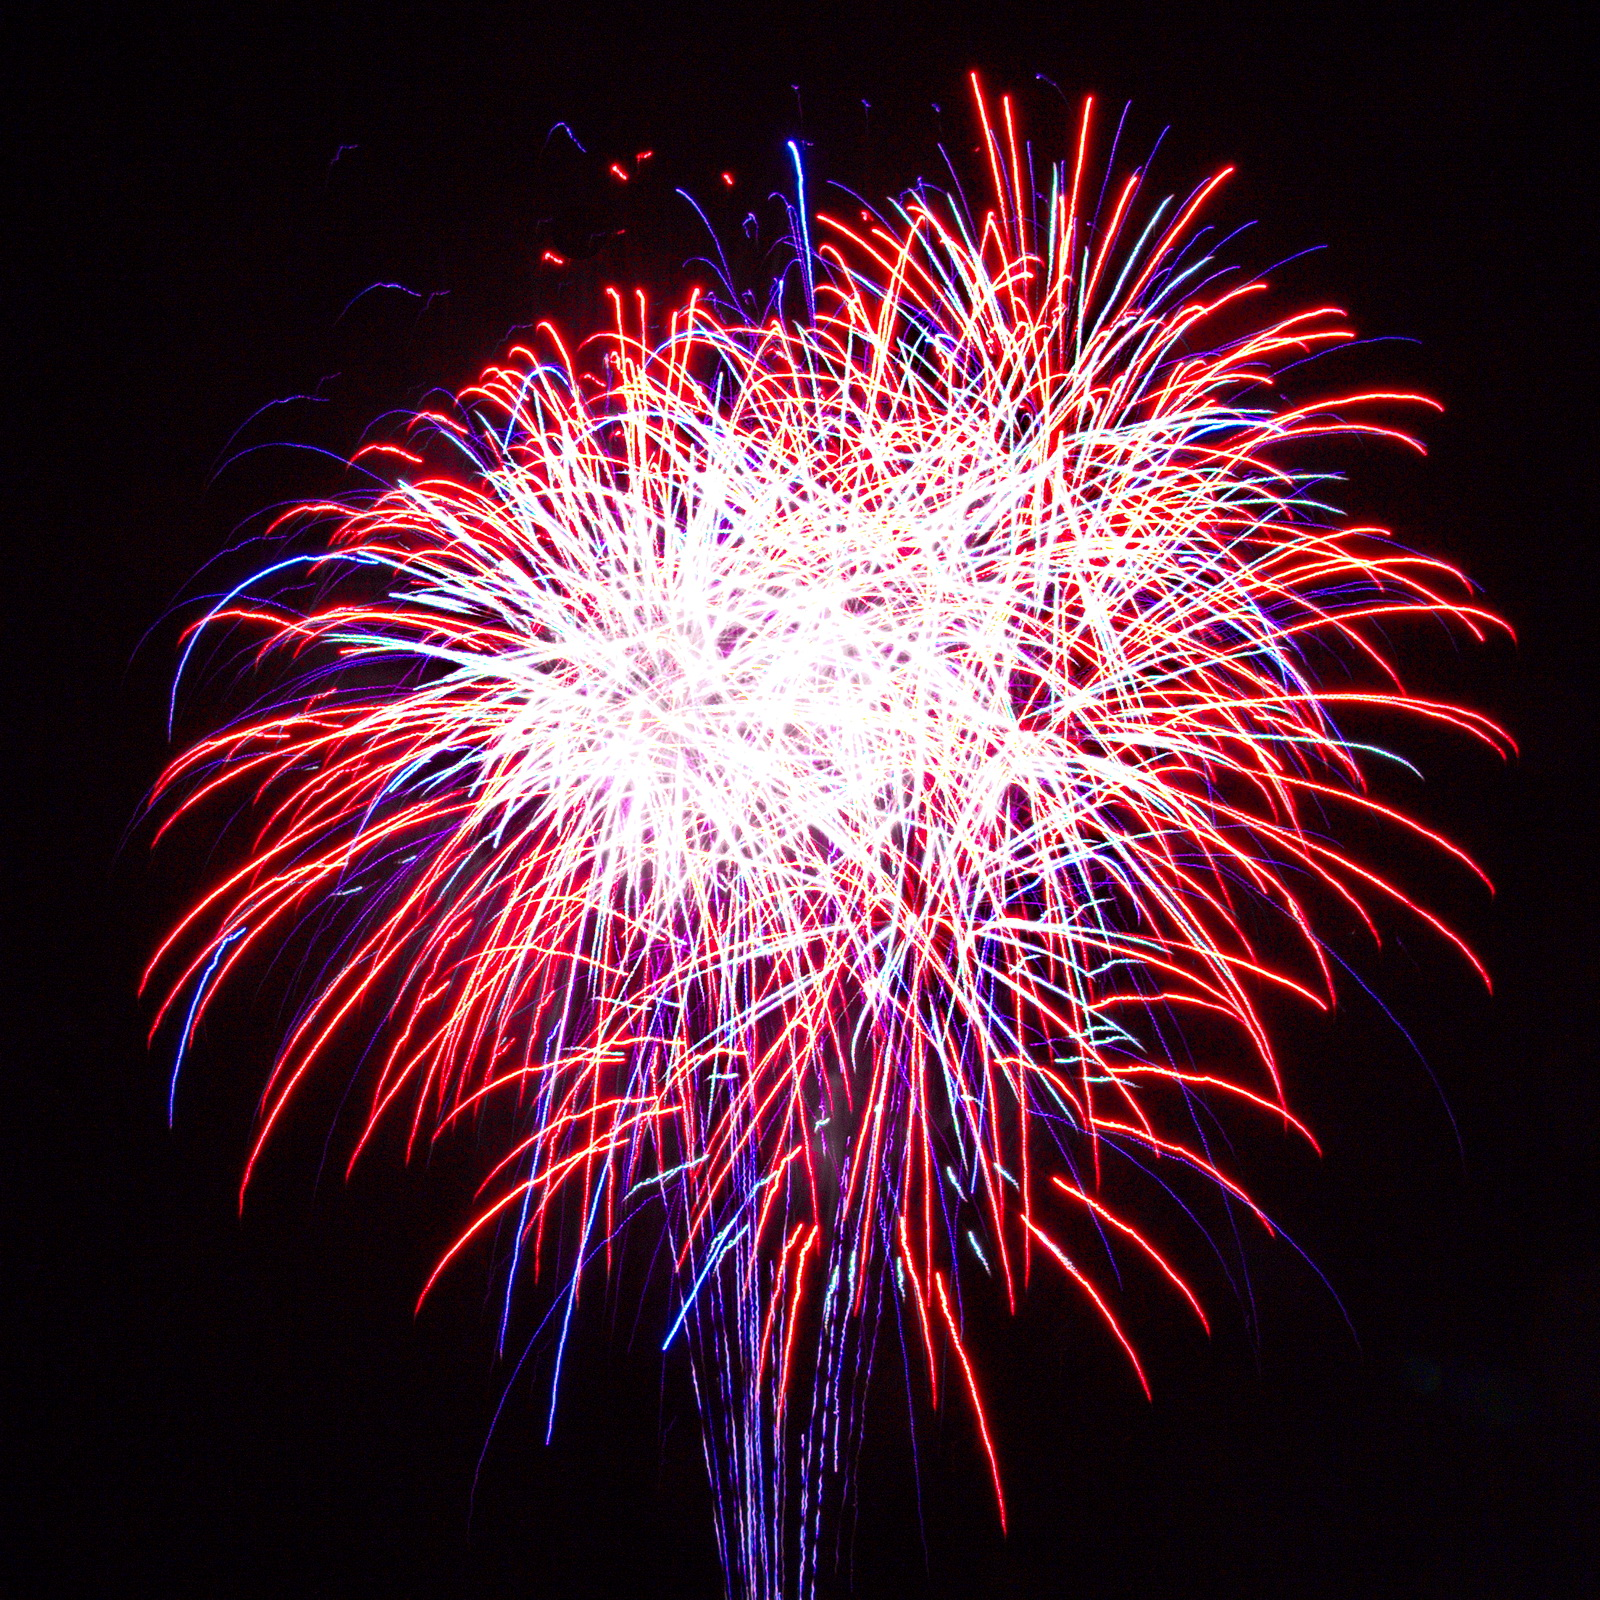 Patriotic Massachusetts Fireworks: Boom in Red, White and Blue